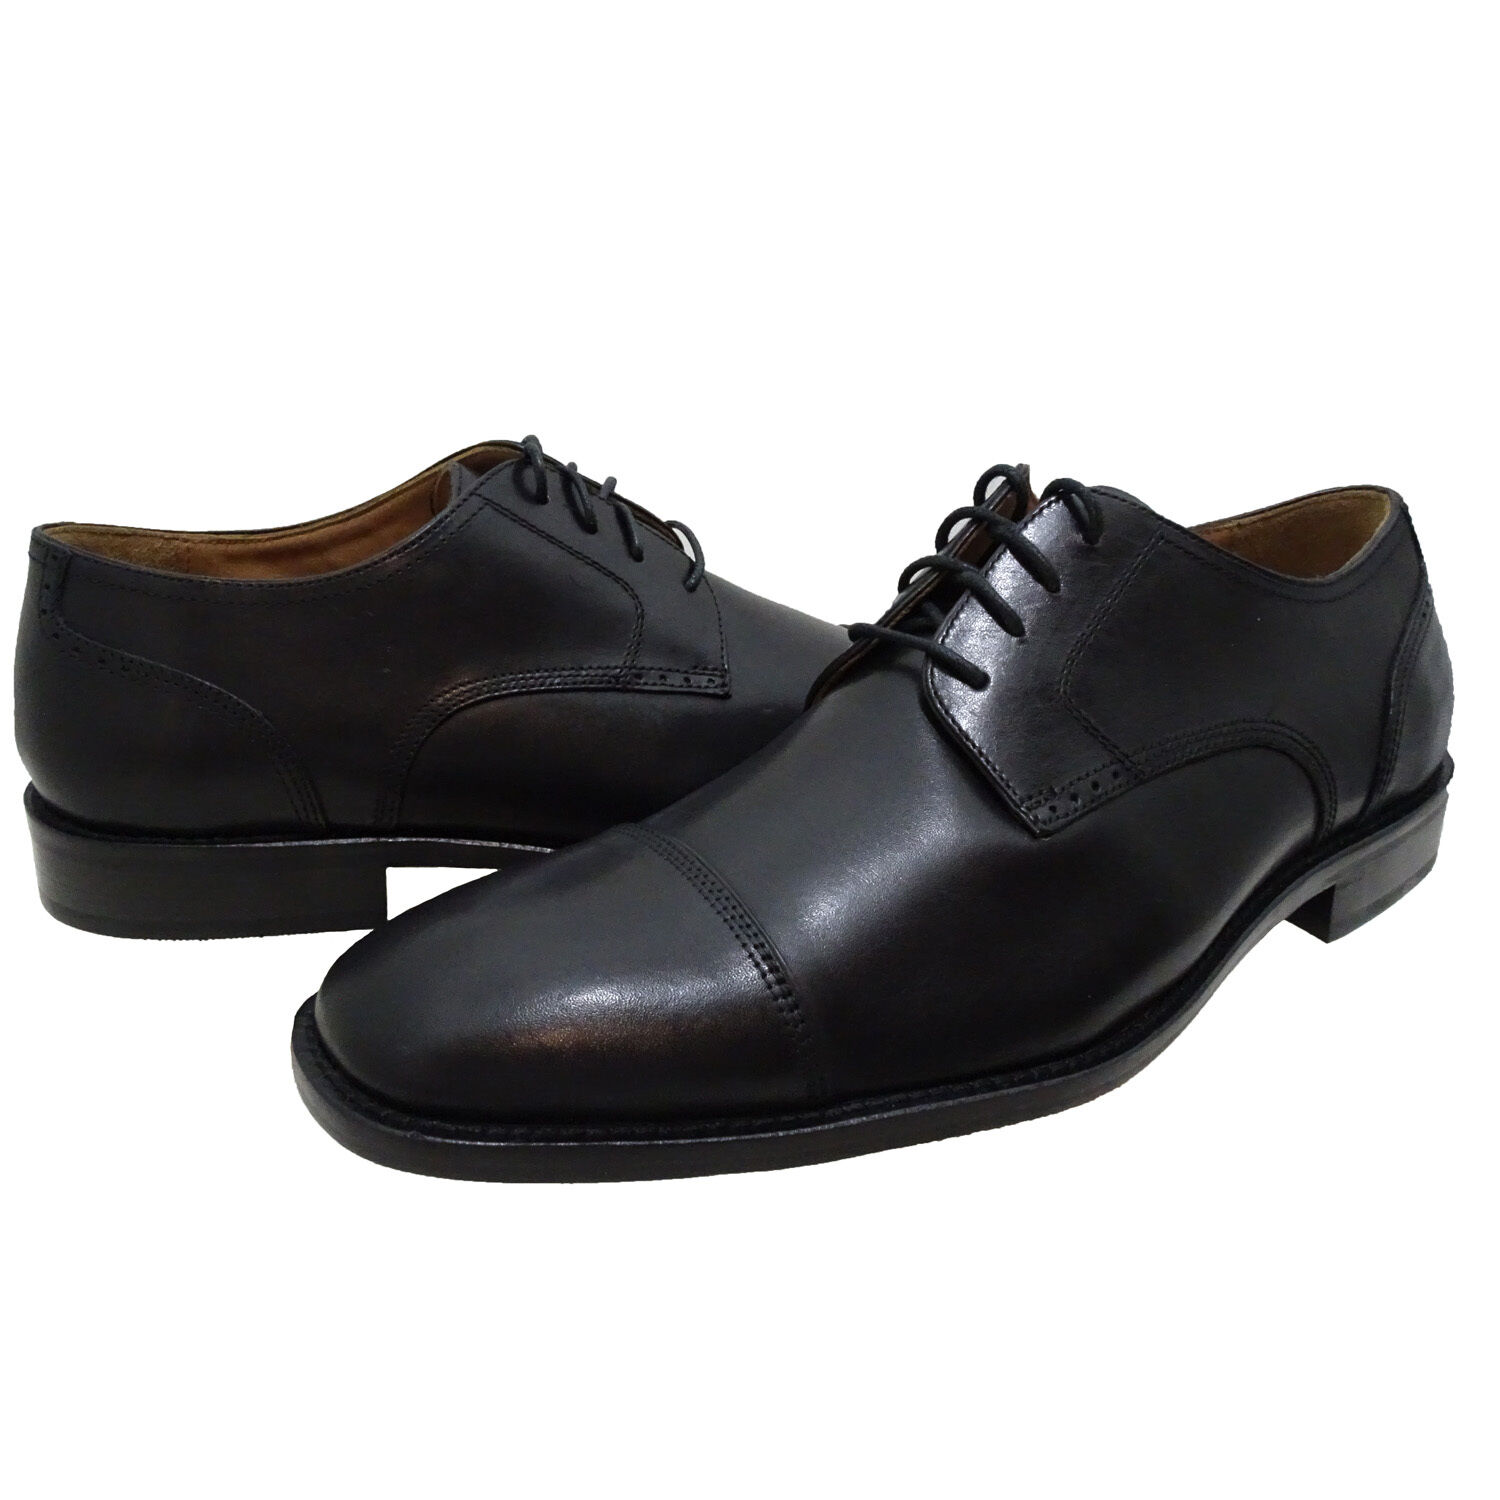 Johnston & Murphy Mens Knowland Lace Up Cap Toe Business Casual Dress shoes